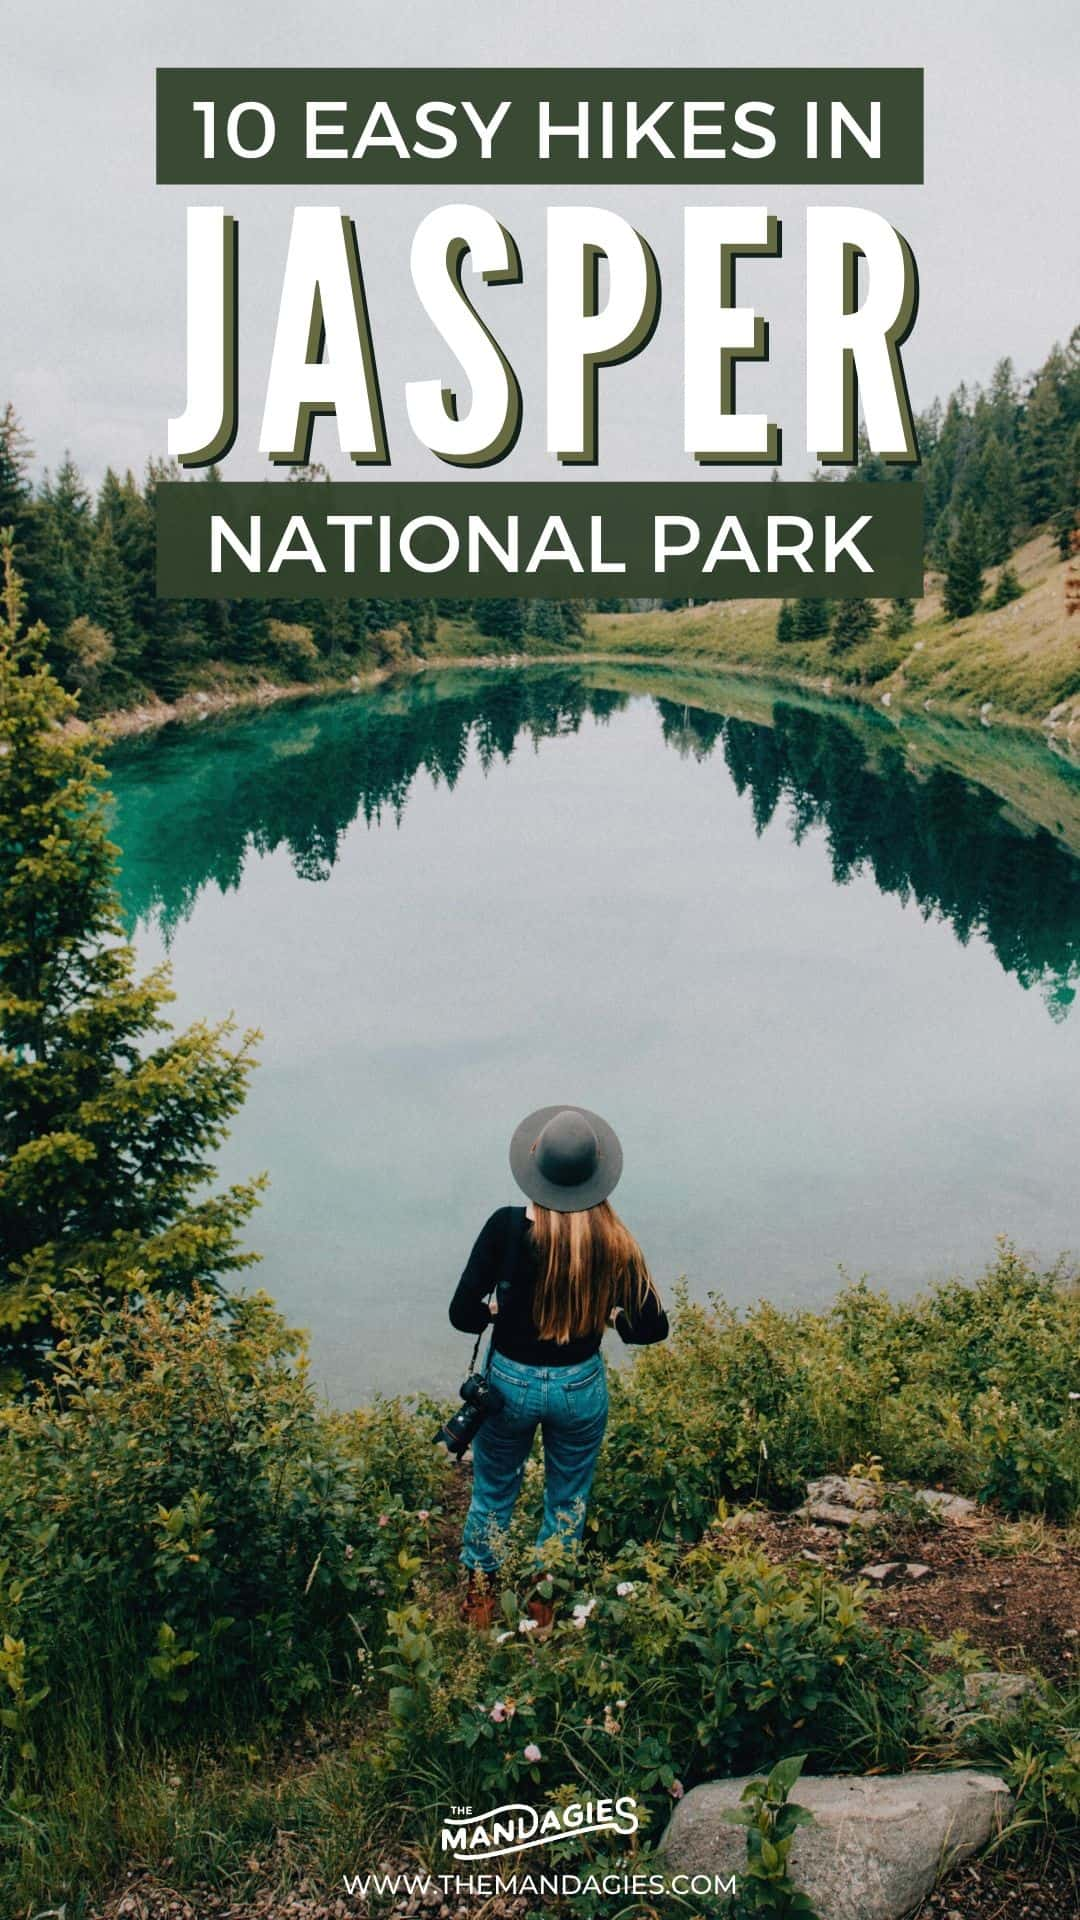 Discover some of the best and easiest hiking trails in Jasper National Park! It can sometimes be daunting to find Jasper hikes for kids, but these ones are easy enough for the whole family to enjoy! Save this for your next trip to Jasper National Park in Canada! #canada #jaspernationalpark #hiking #trails #jasper #canadianrockies #roadtrip #northamerica #travel